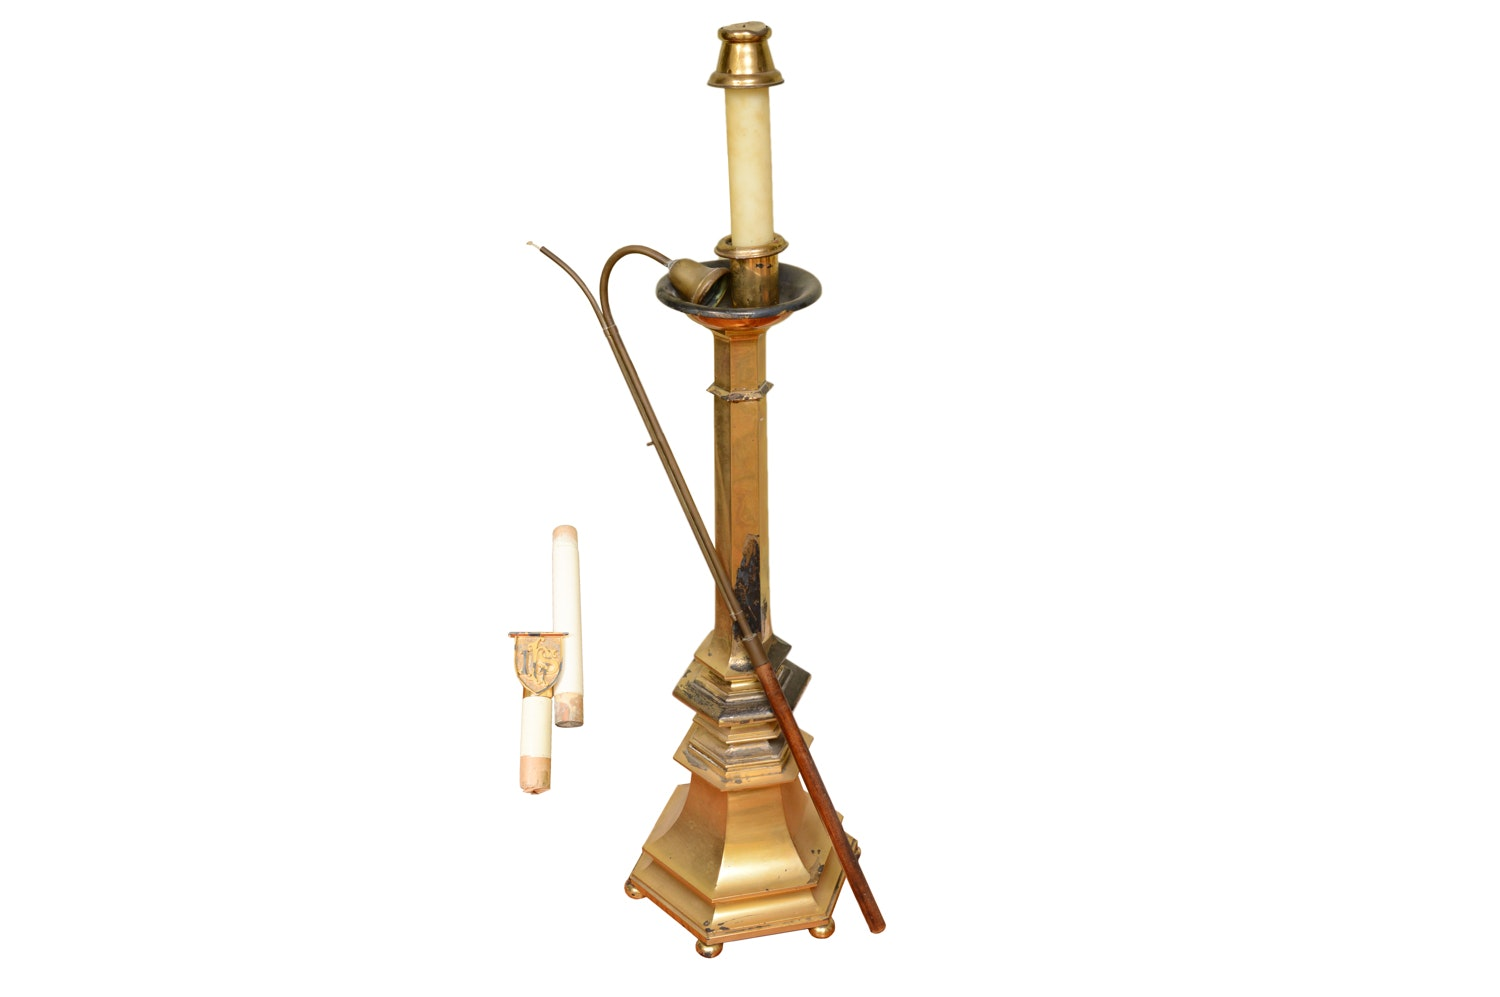 Brass Finished Paschal Candlestick with Snuffer